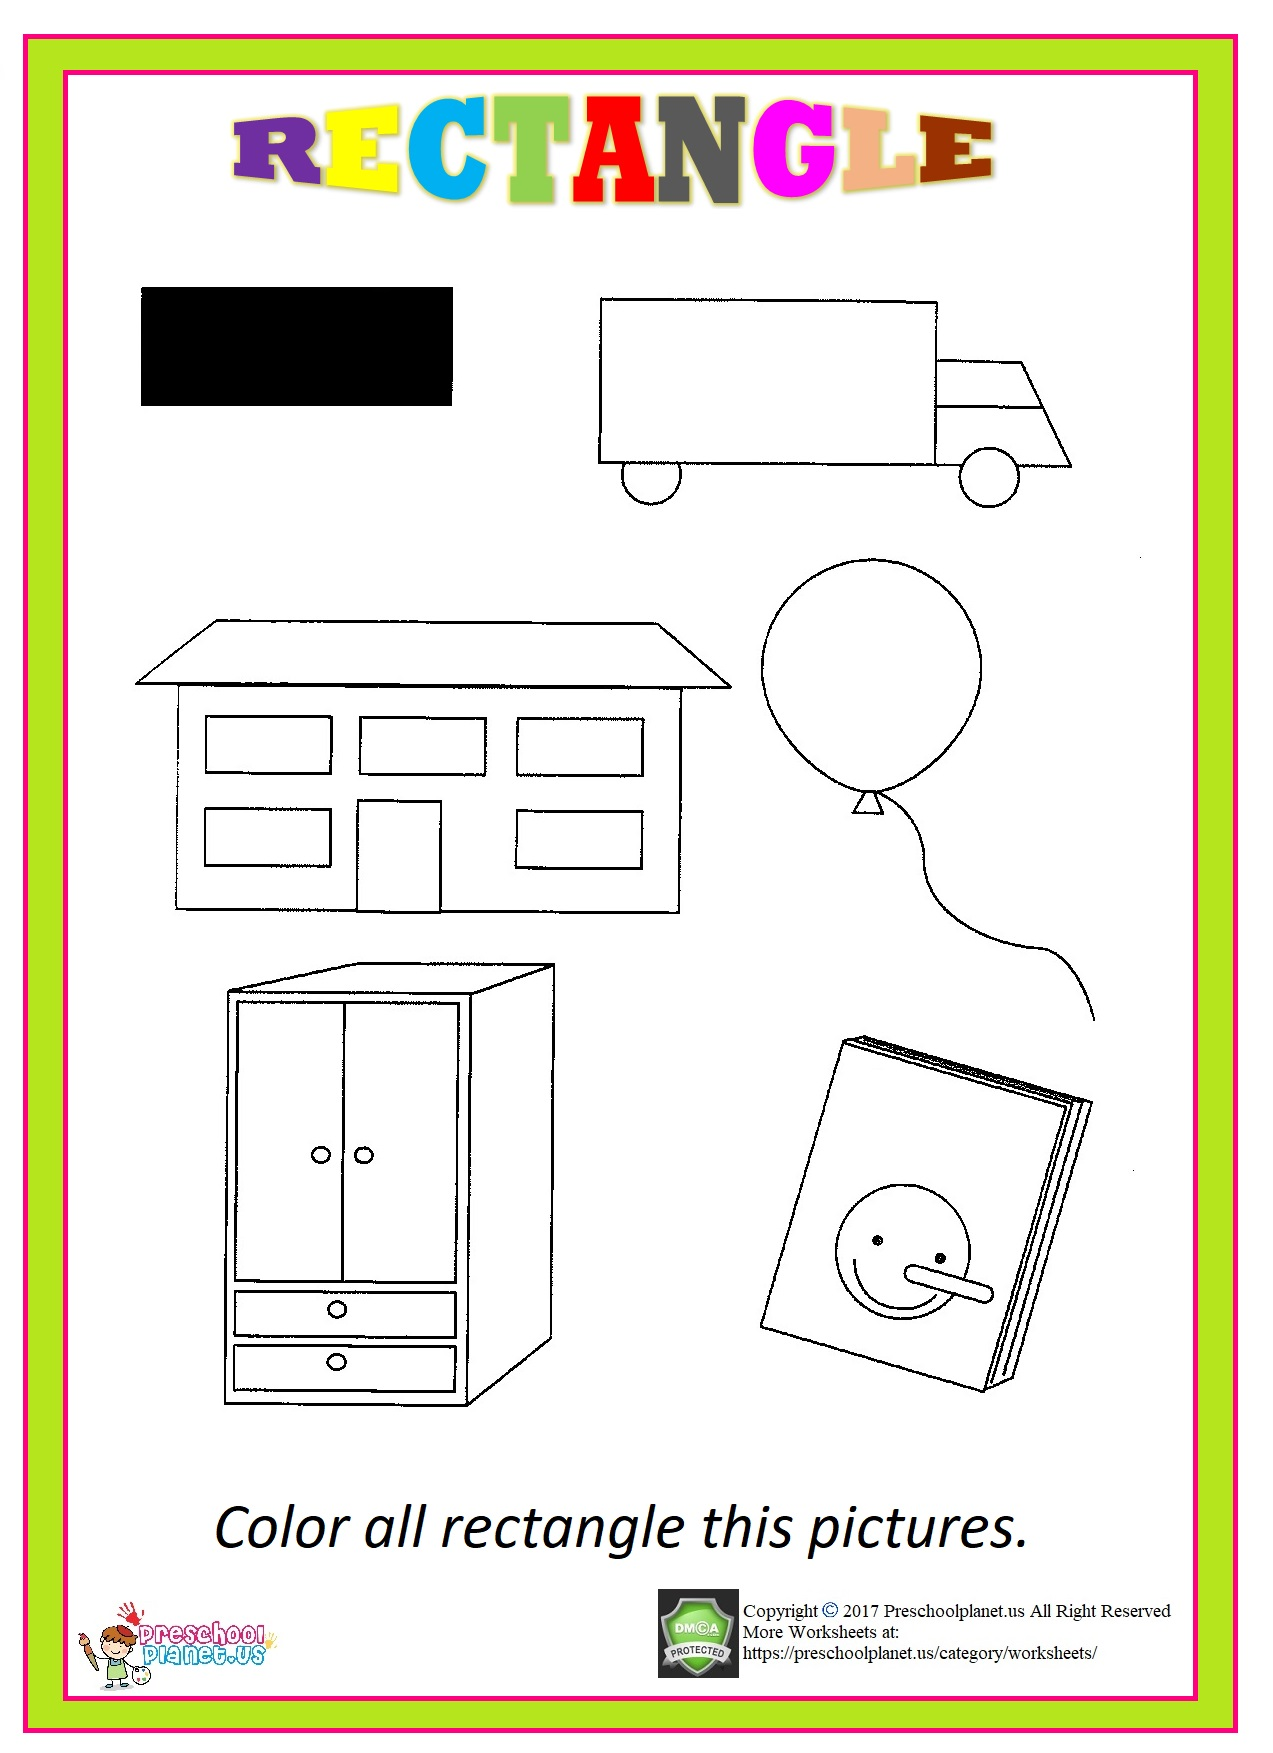 rectangle worksheet for kids